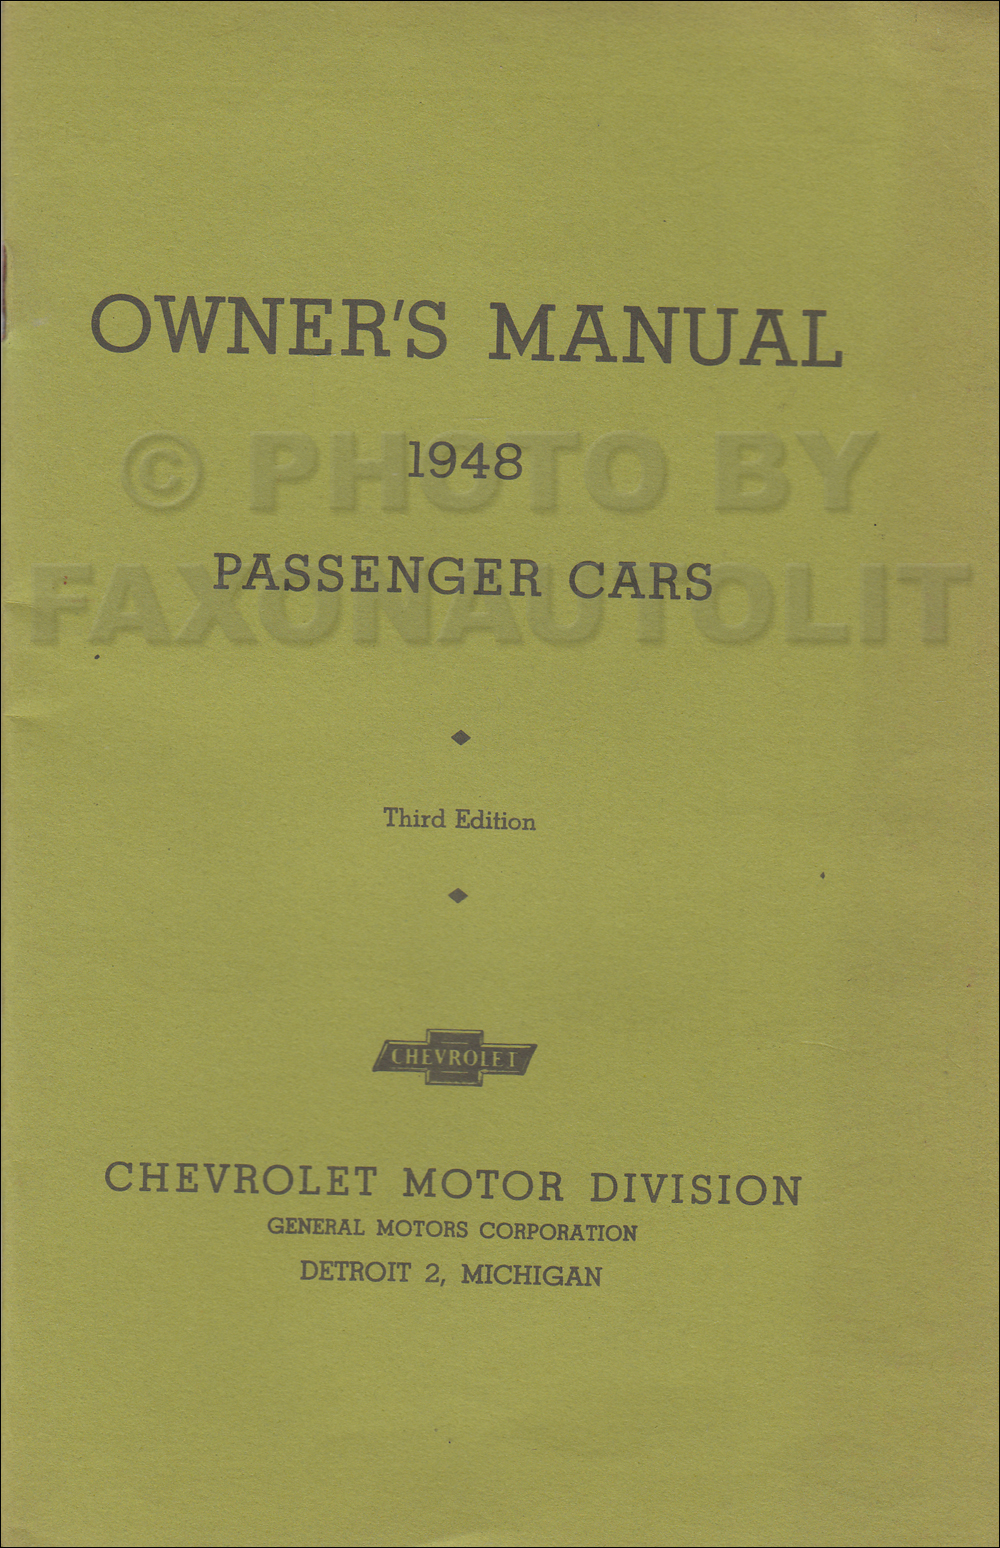 1948 Chevrolet Car Owner's Manual Reprint, Older Edition